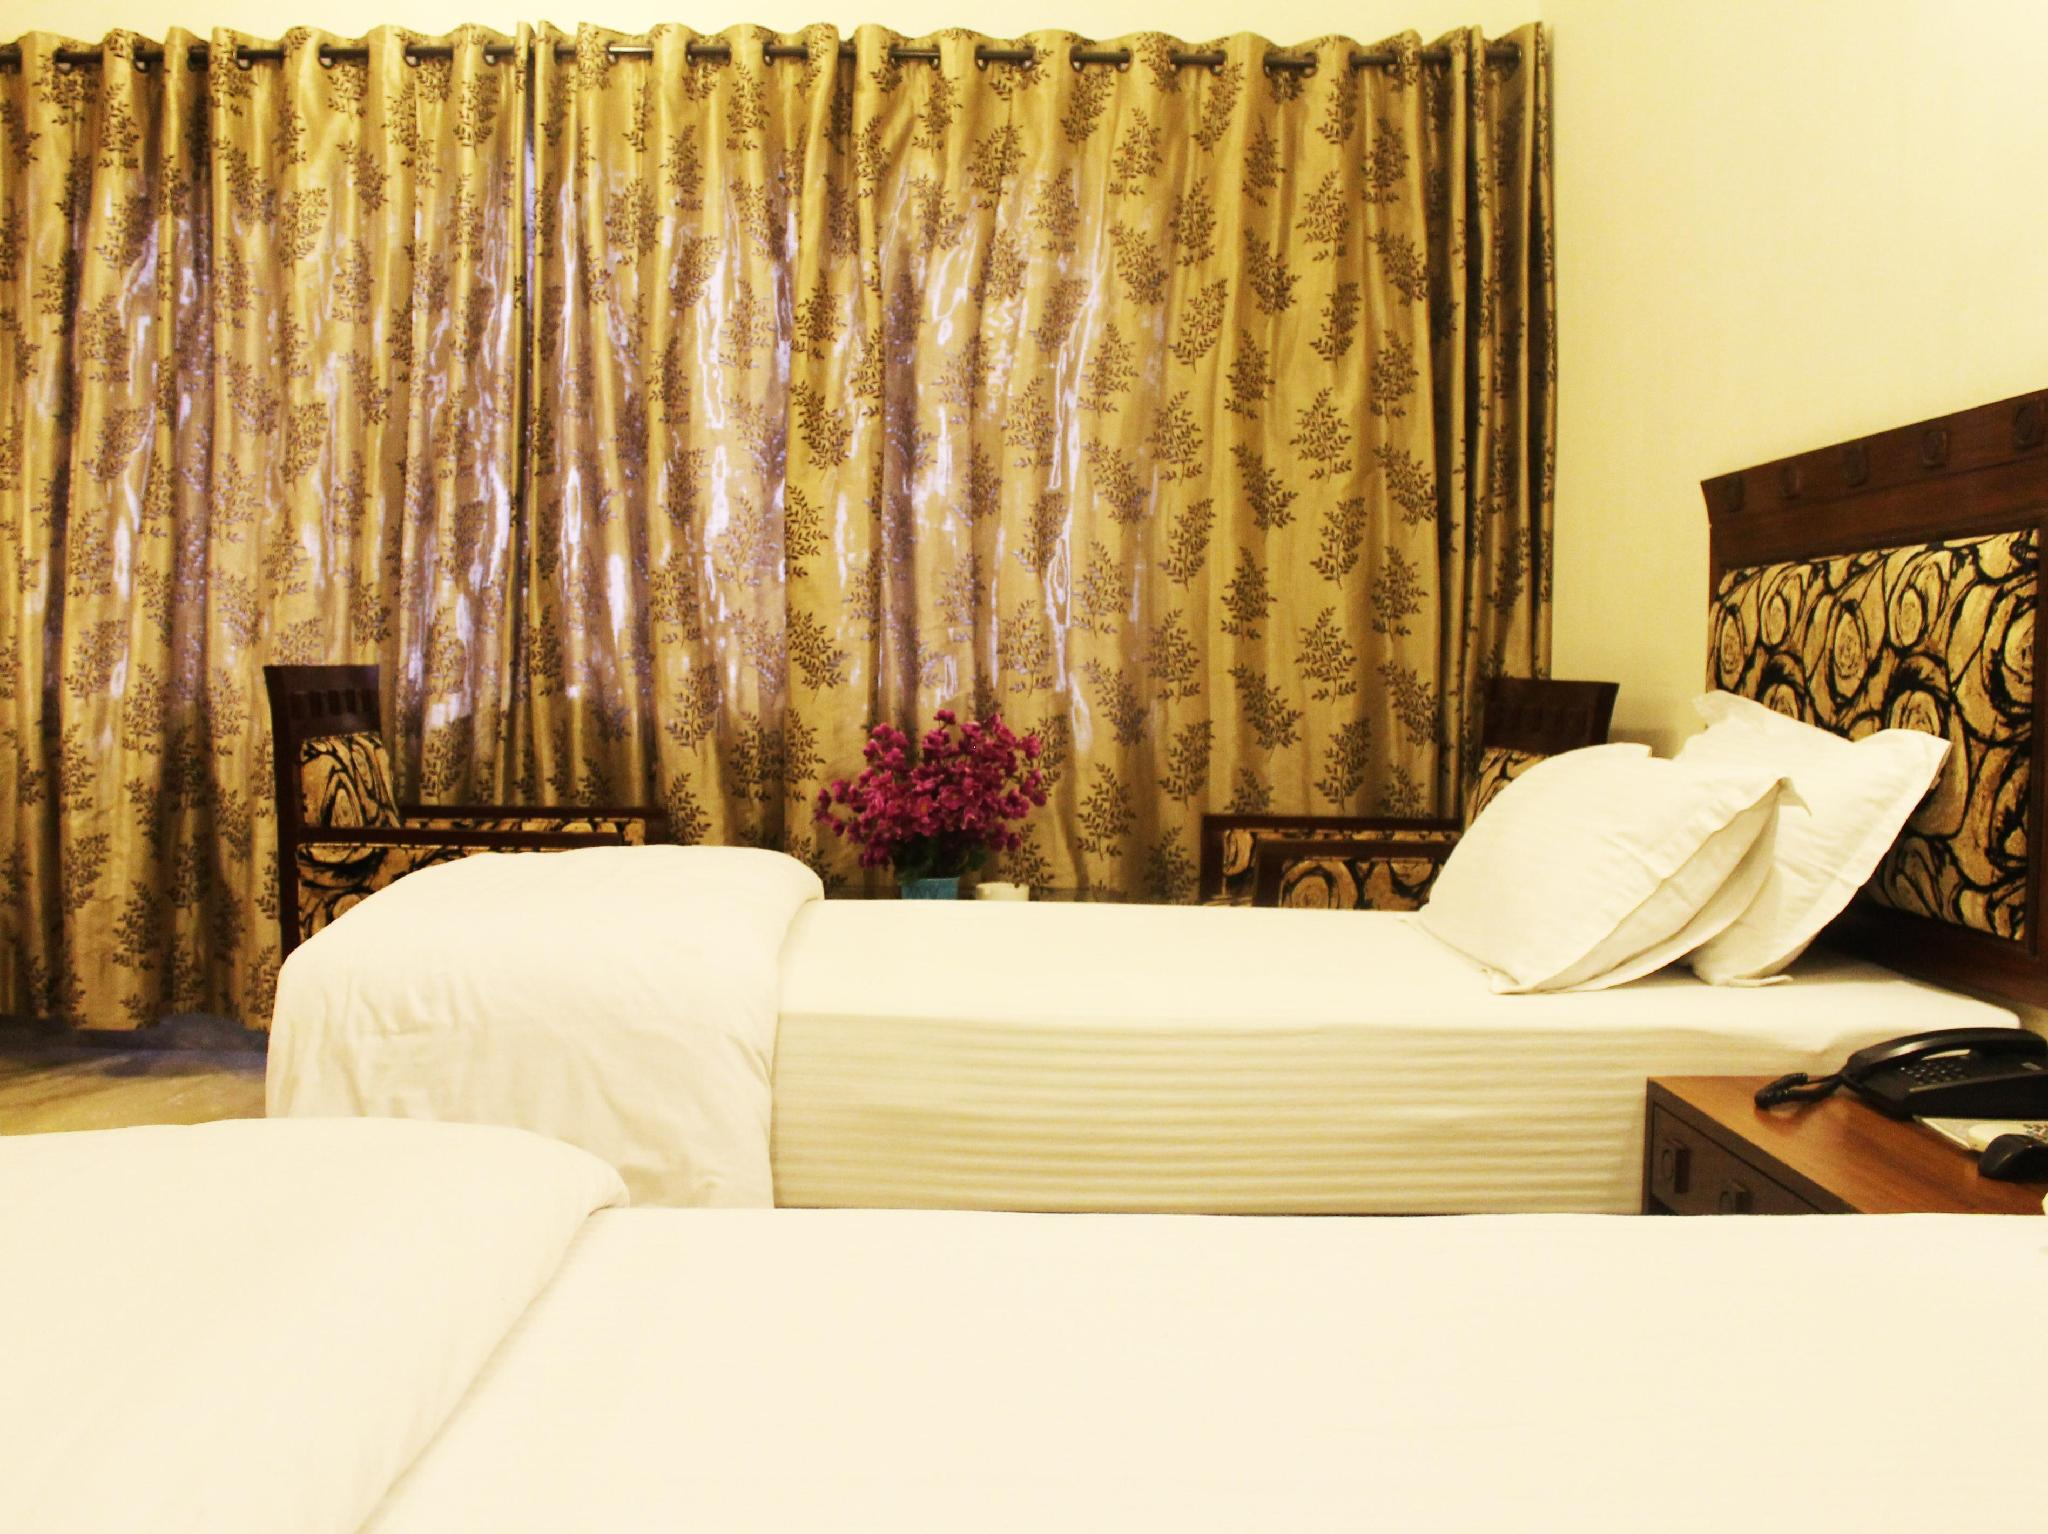 Hotel Taj Darbar Bodhgaya - Hotel and accommodation in India in Bodh Gaya